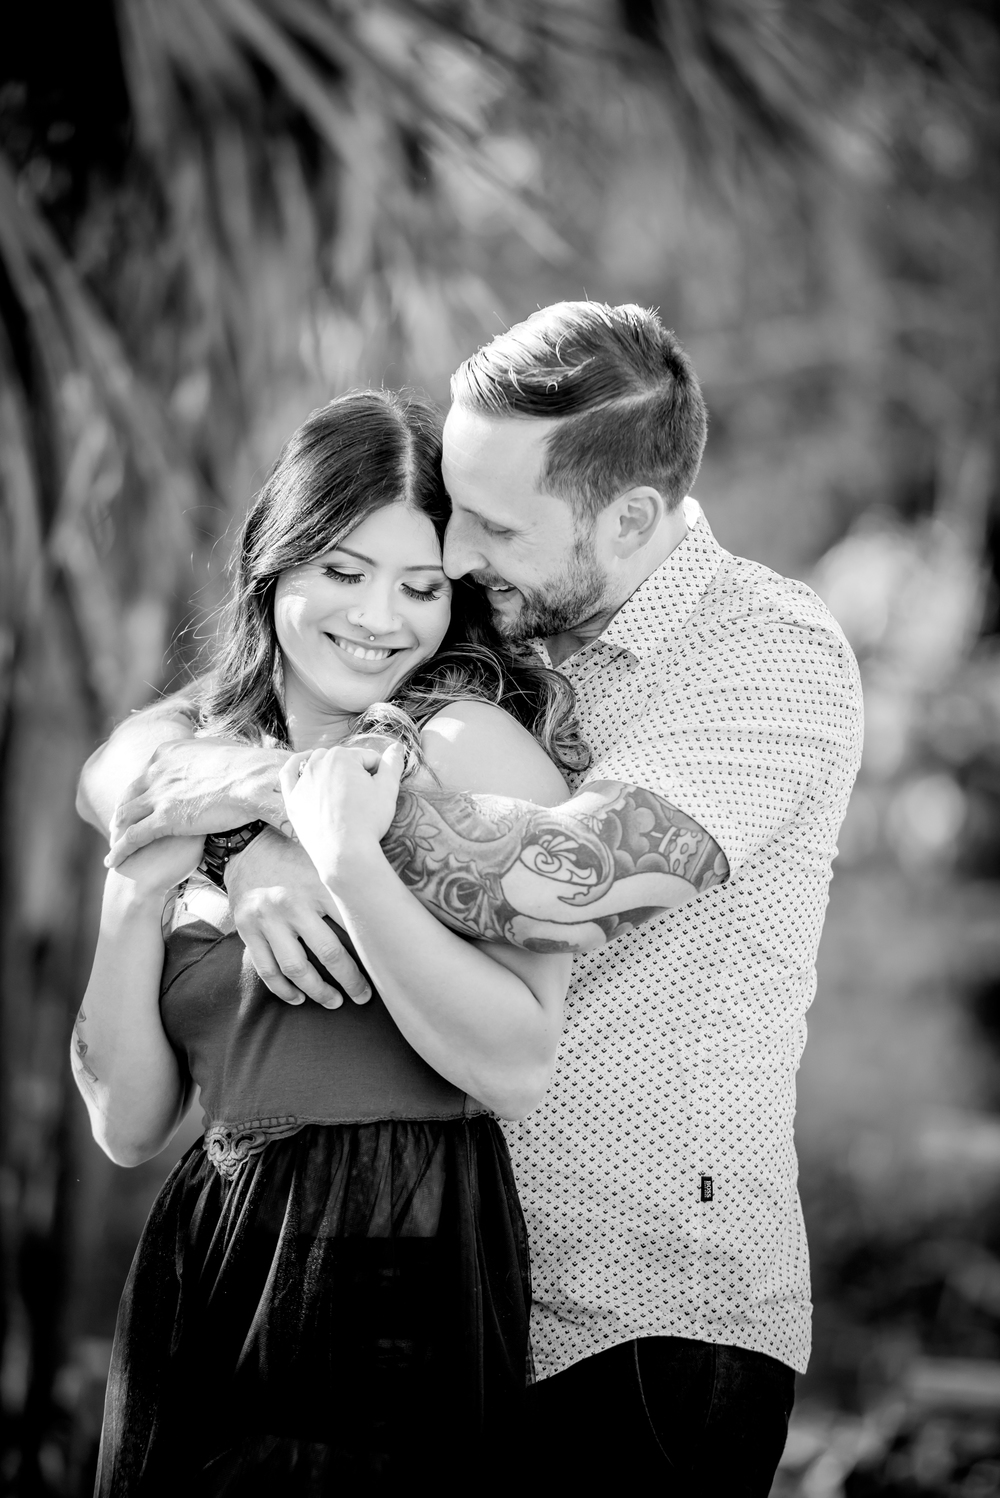 tampa-engagement-photographer-fun-vibrant-morris-bridge-outdoor-romantic